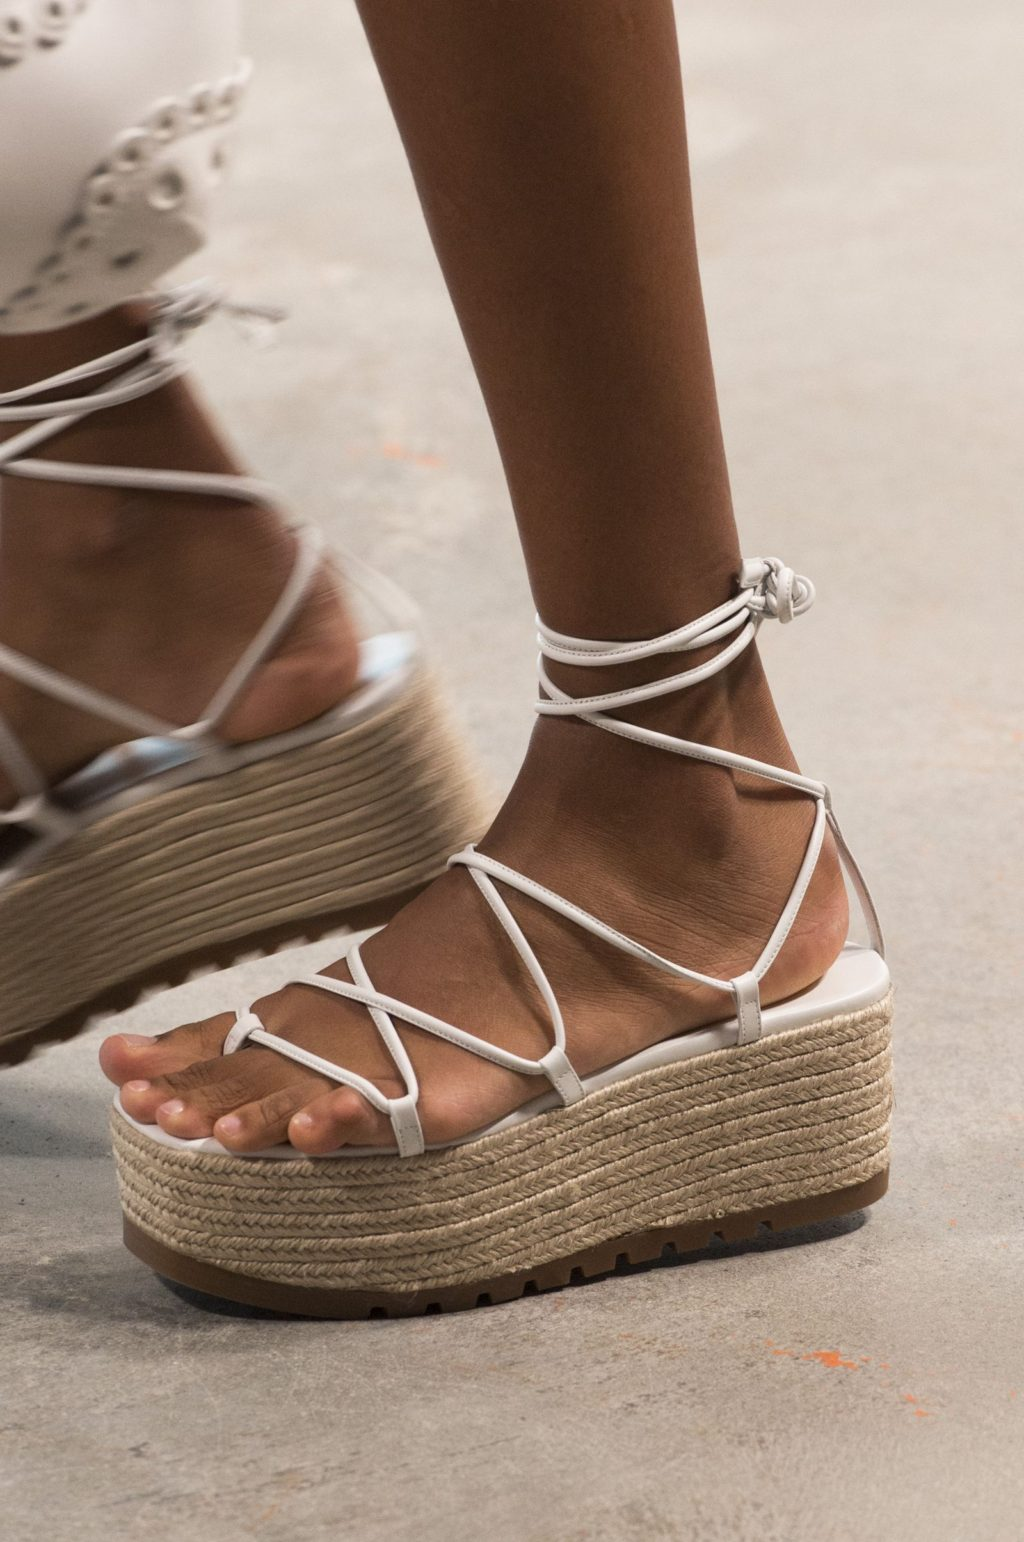 Sky-high-flatforms.-1-1024x1542 60+ Hottest Shoe Fashion Trends in 2021